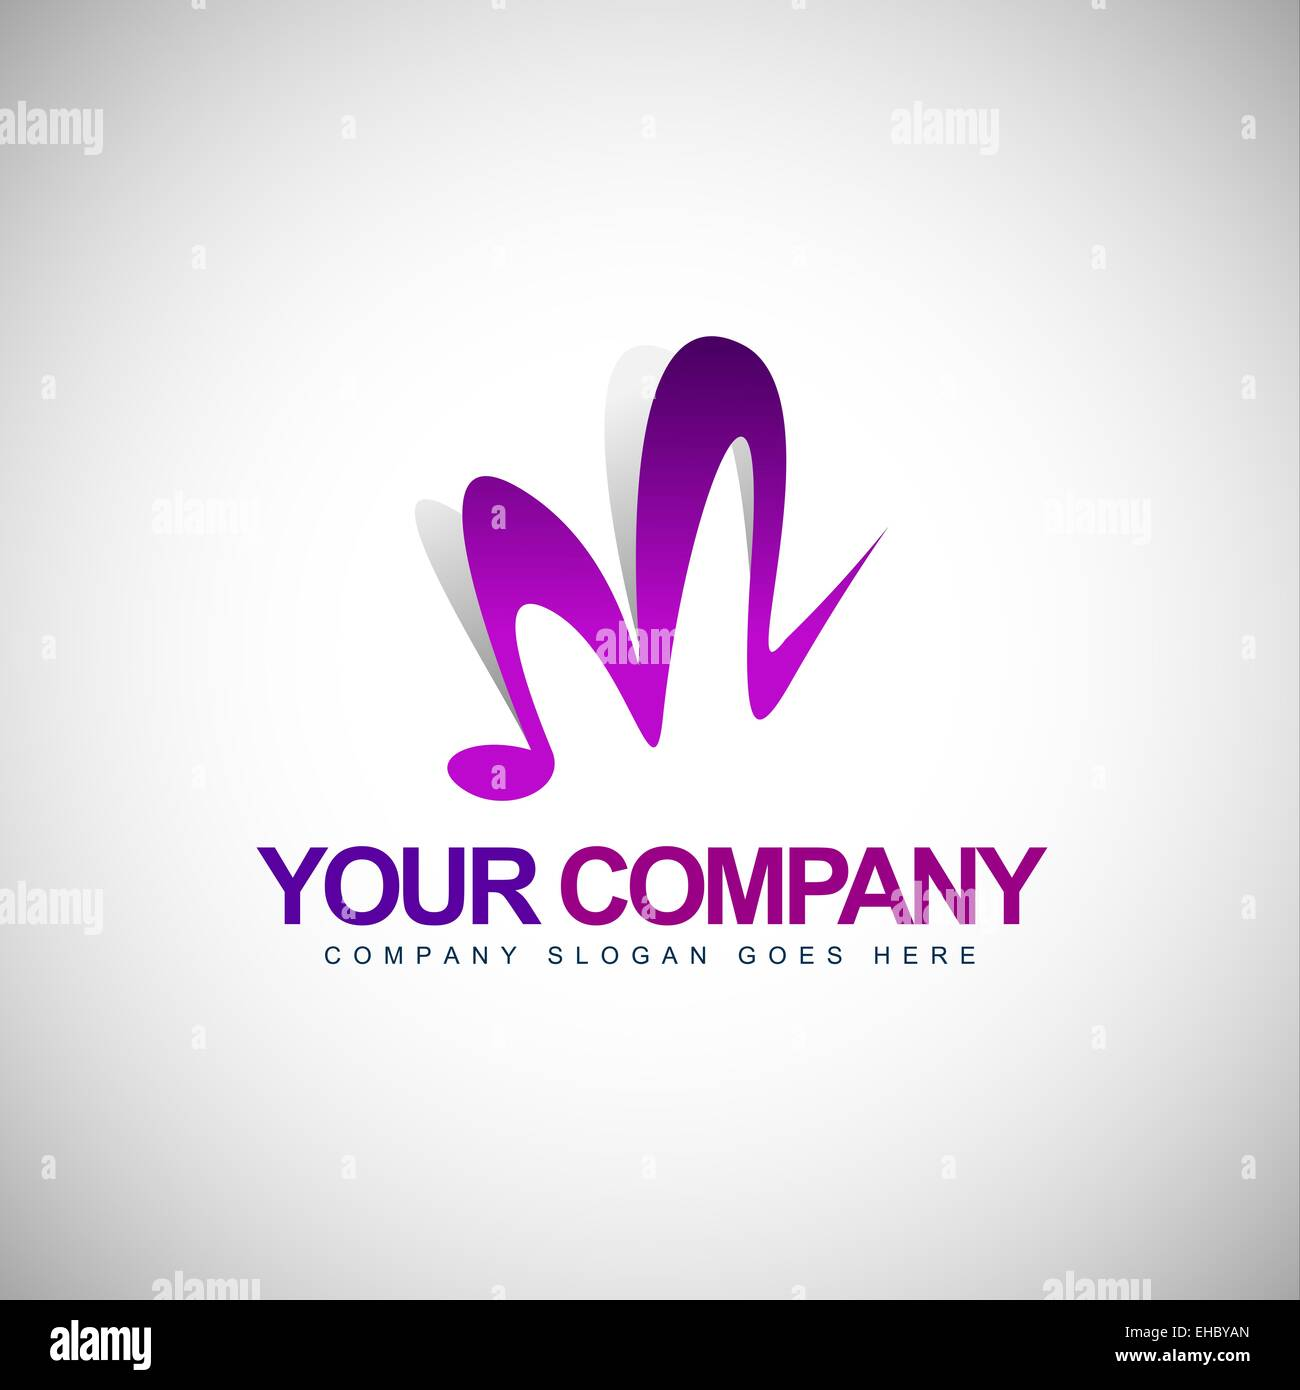 letter m logo royalty free stock photos image 22214578 logo letter m logo vector icon logo for 182